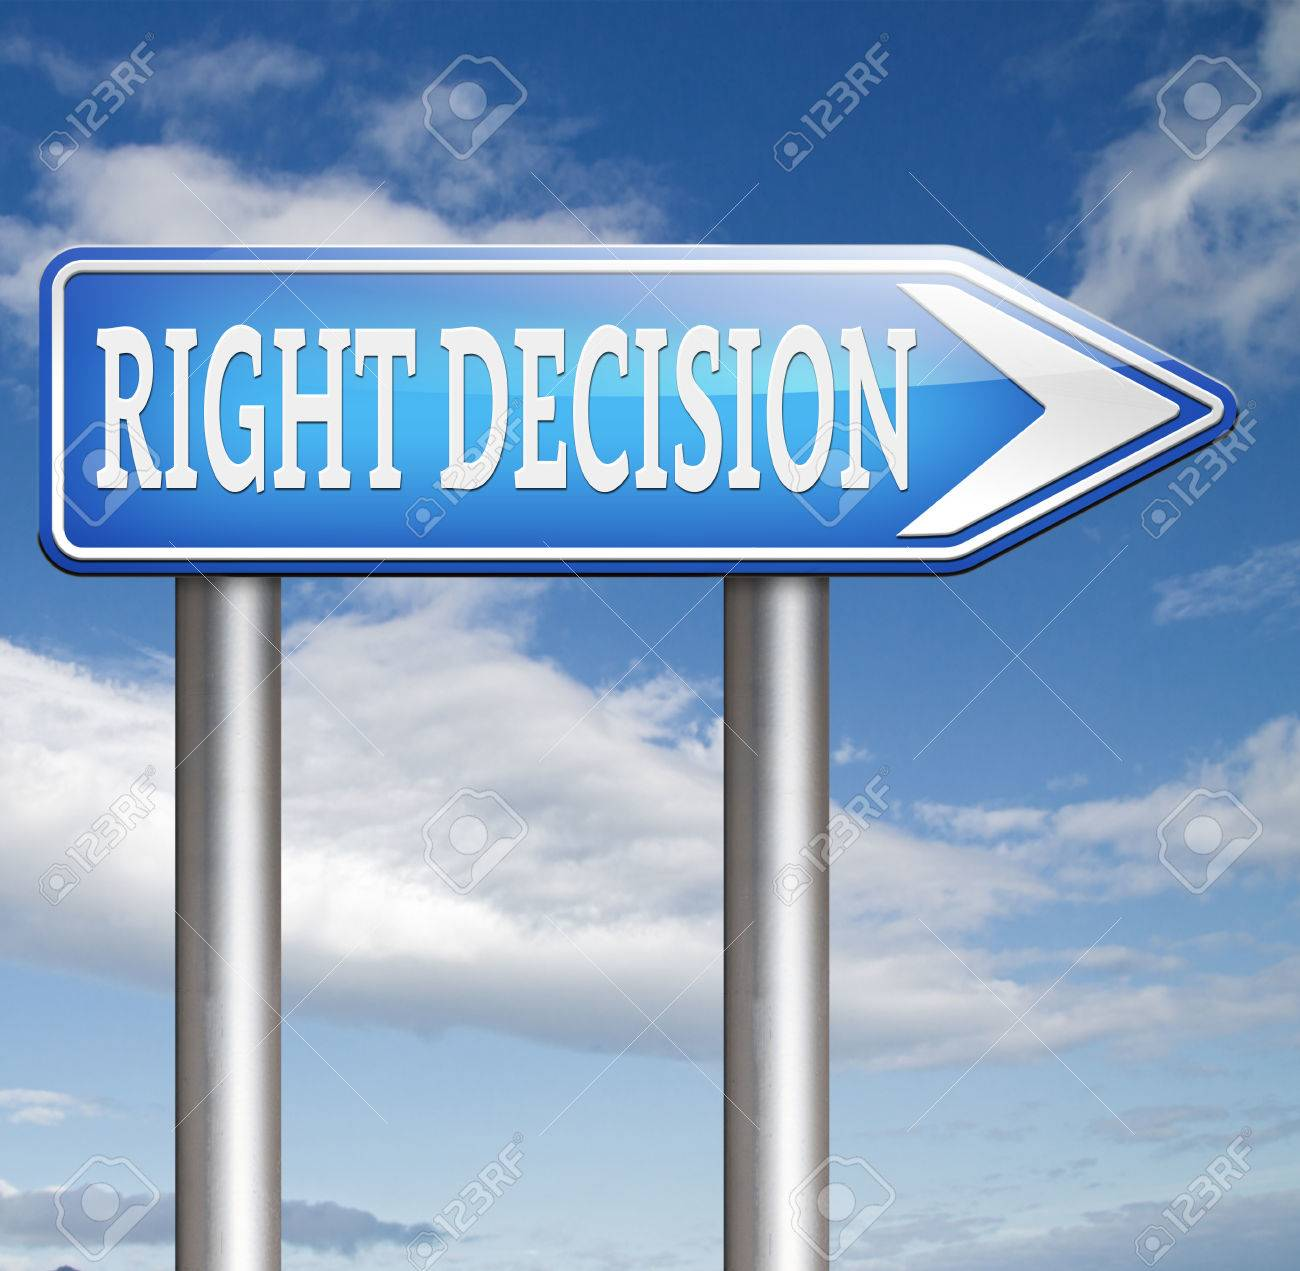 right decision choice correct way to choose wise choice sign stock